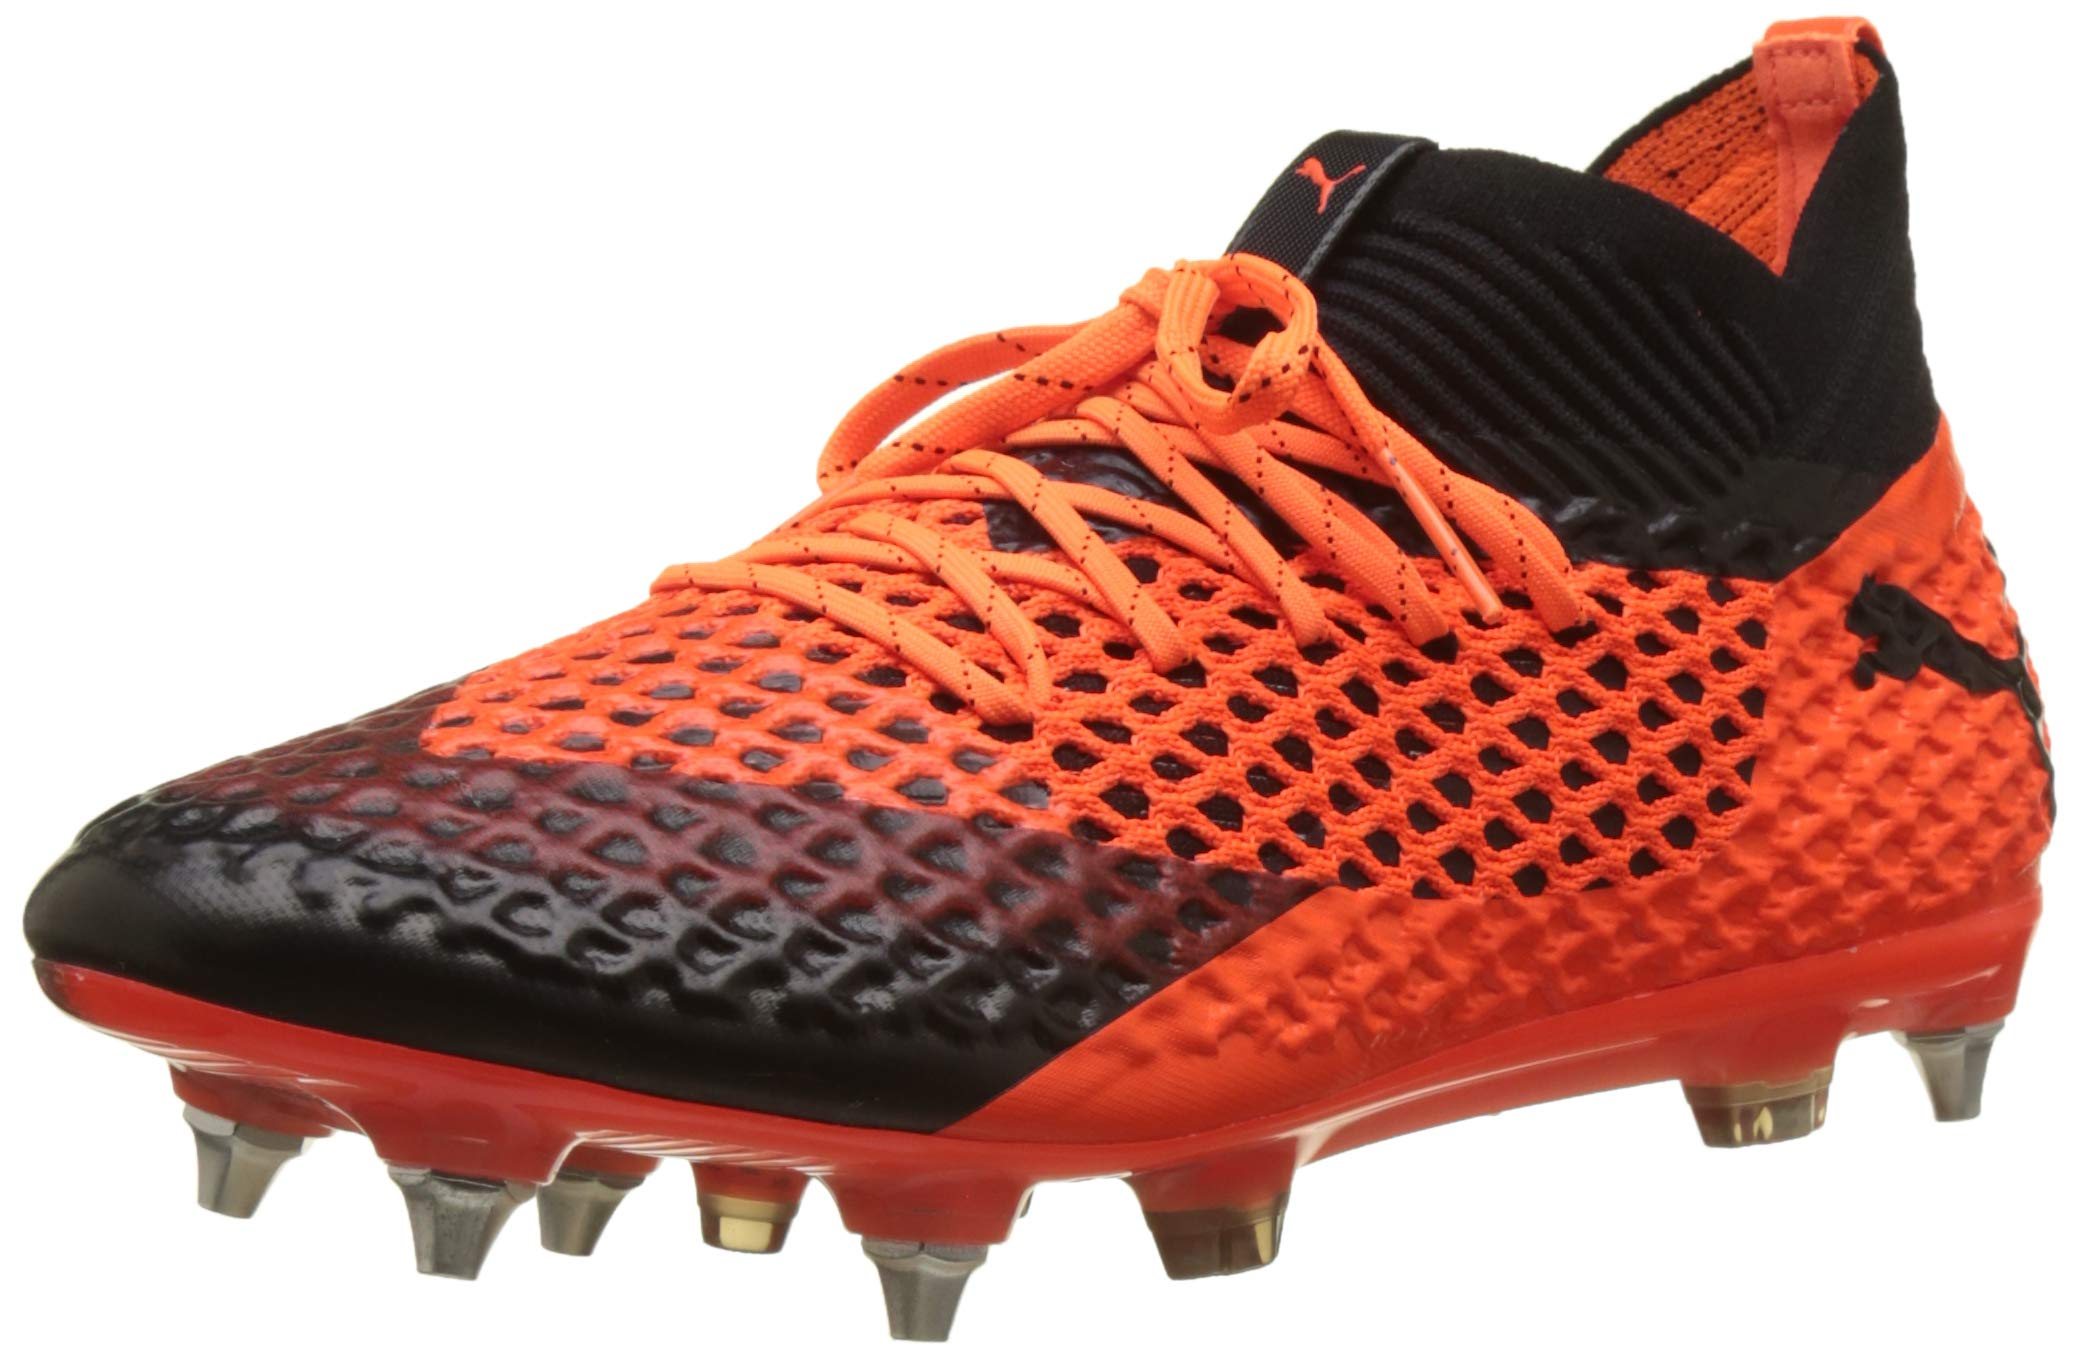 shocking Future 2 1 0340 Eu Orange De Netfit SgChaussures Mx Football Puma HommeNoir Black TK1lFJc